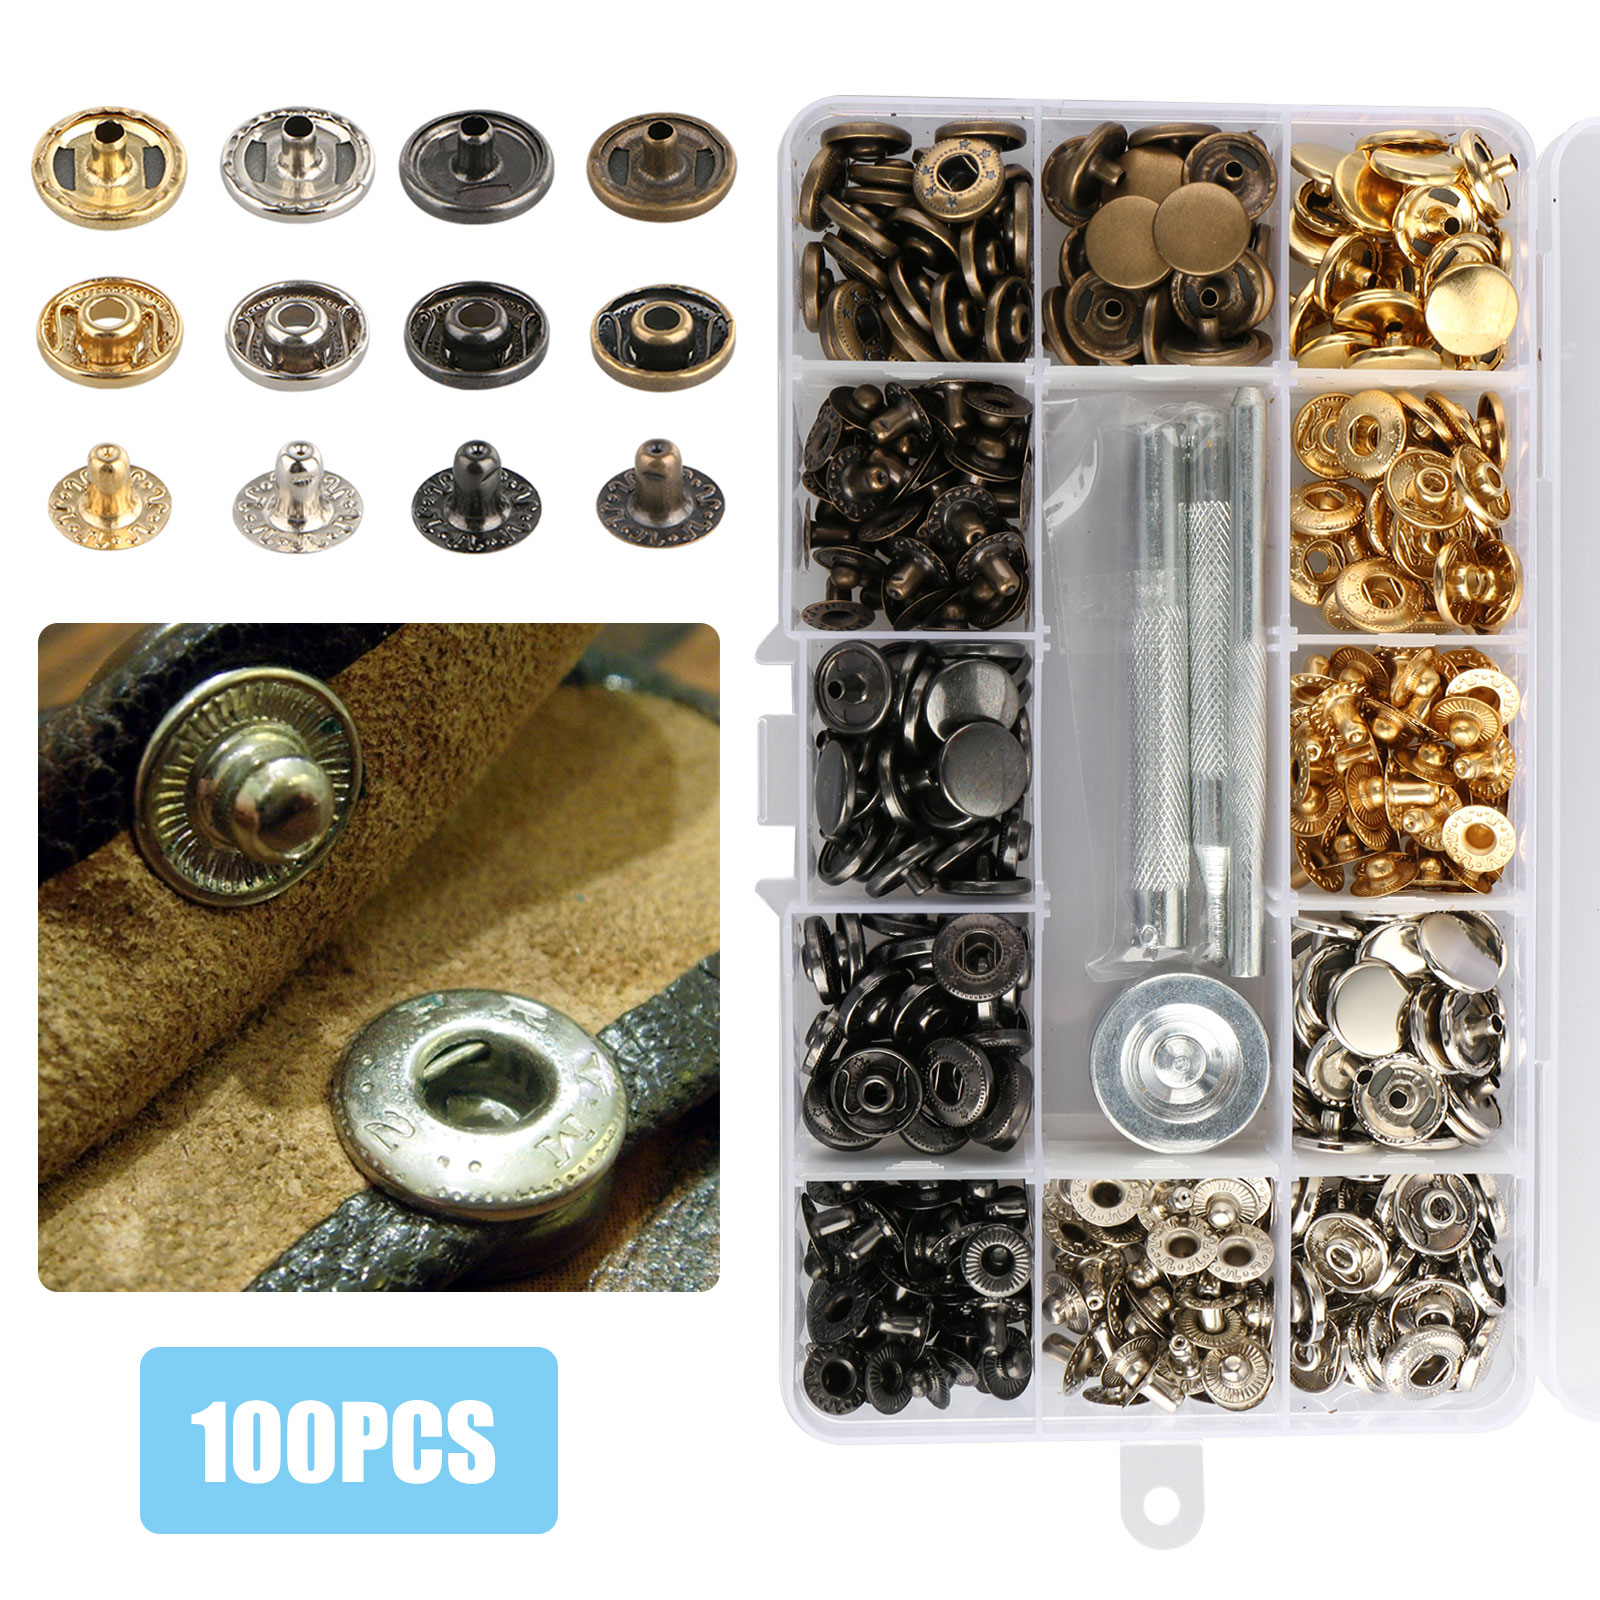 EEEKit 100 Sets Snap Fasteners Kit (12.5mm) ,  Metal Snap Buttons Press Studs with 4 Pieces Fixing Tools, 4 Colors for Leather, Coat, Down Jacket, Jeans Wear and Bags Decoration